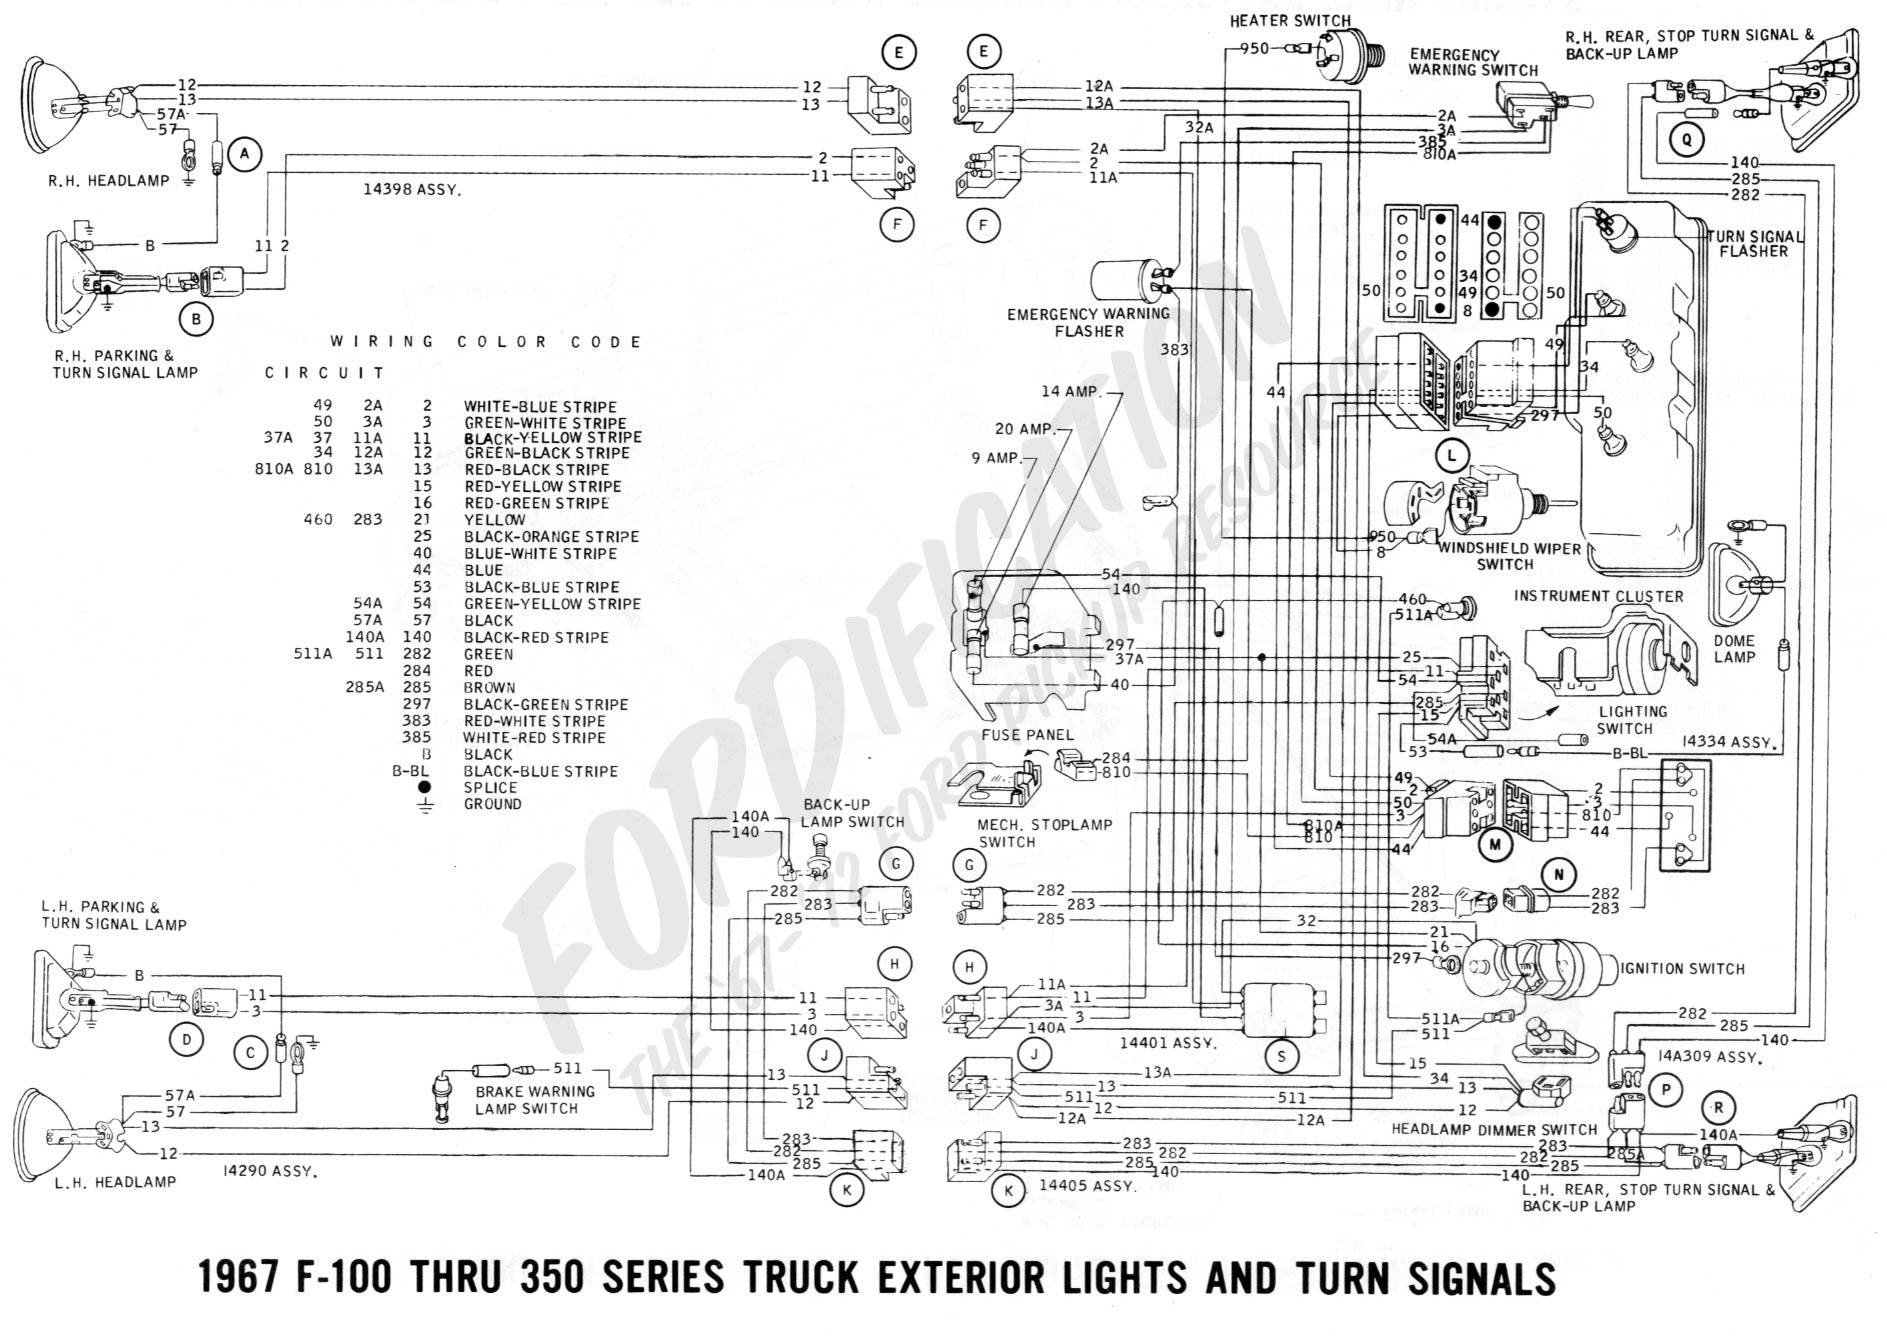 1969 Ford F100 Wiring Diagram Data 63 Impala Ignition 1960 Schema Online F 350 Steering